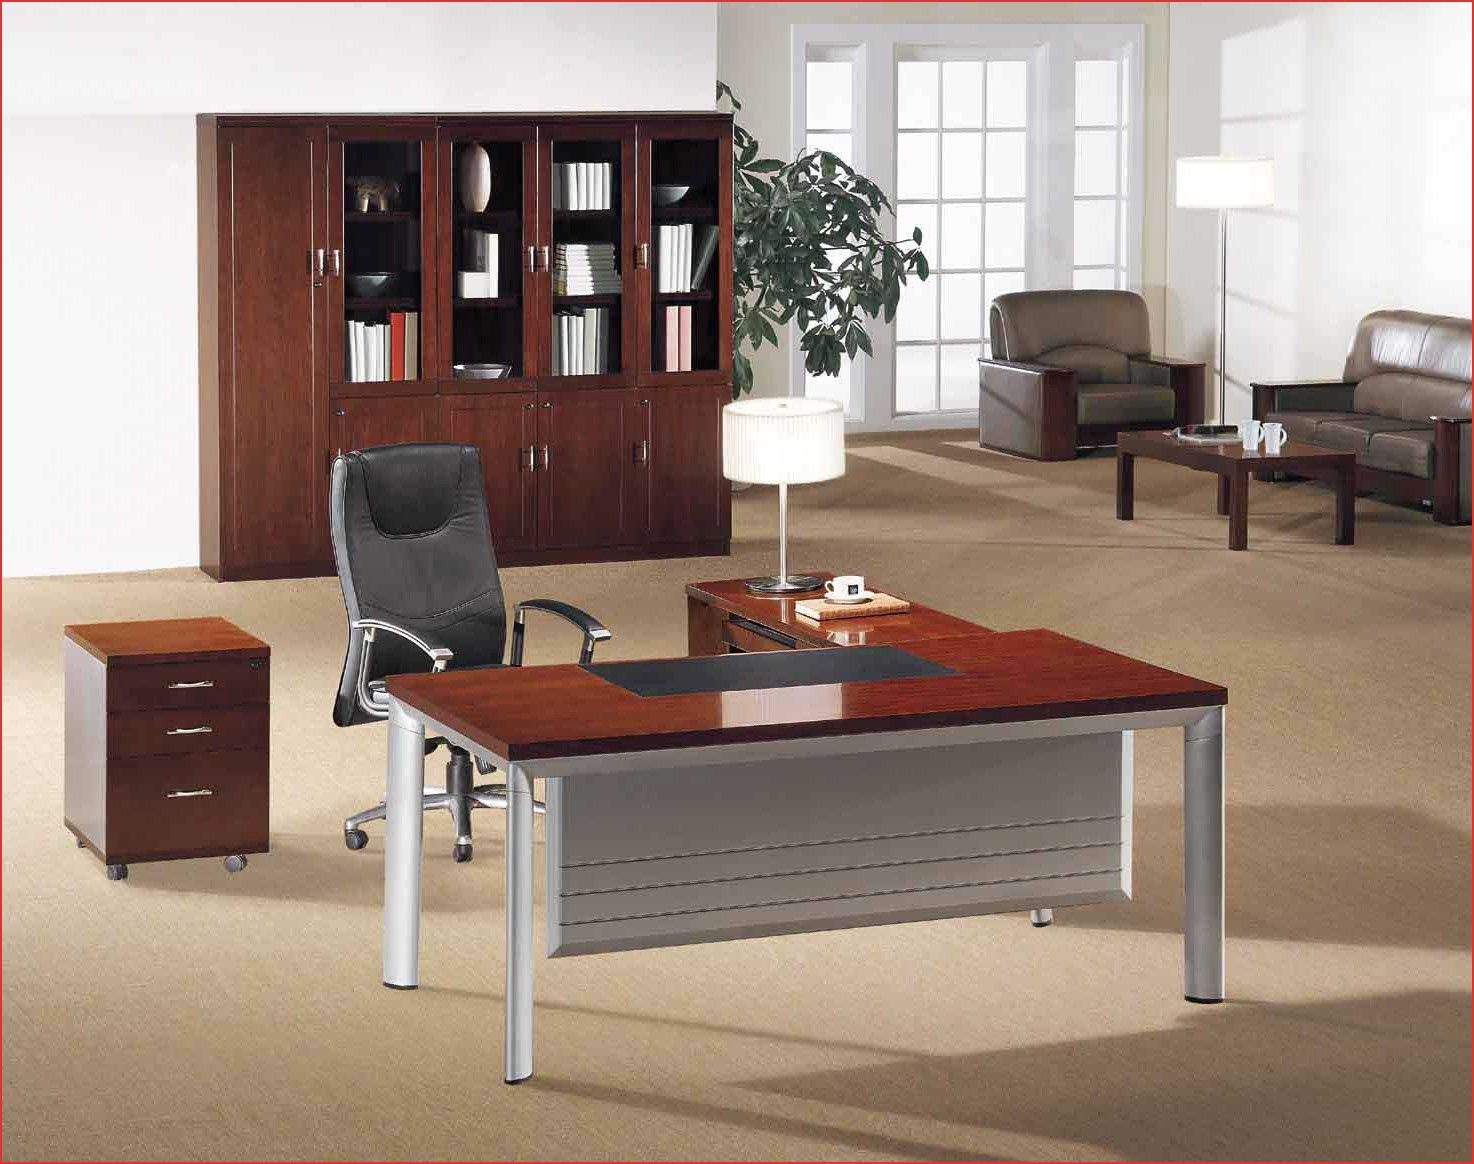 2018 Cort Office Furniture Used   Rustic Home Office Furniture Check More  At Http:/